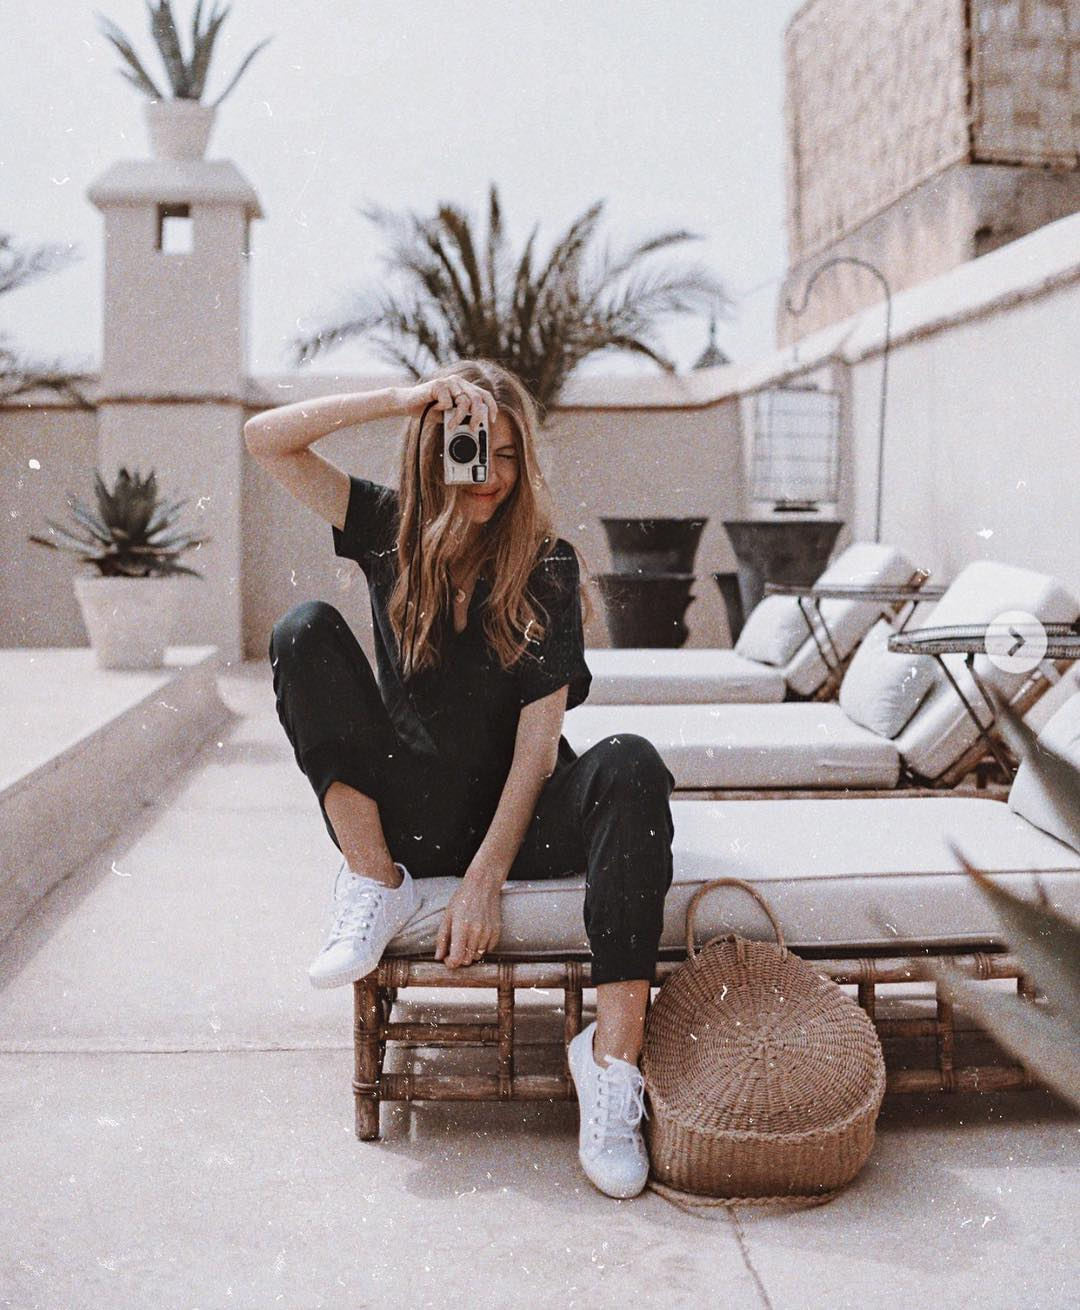 Cargo Jumpsuit In Black And White Sneakers For Summer City Walking Tour 2021